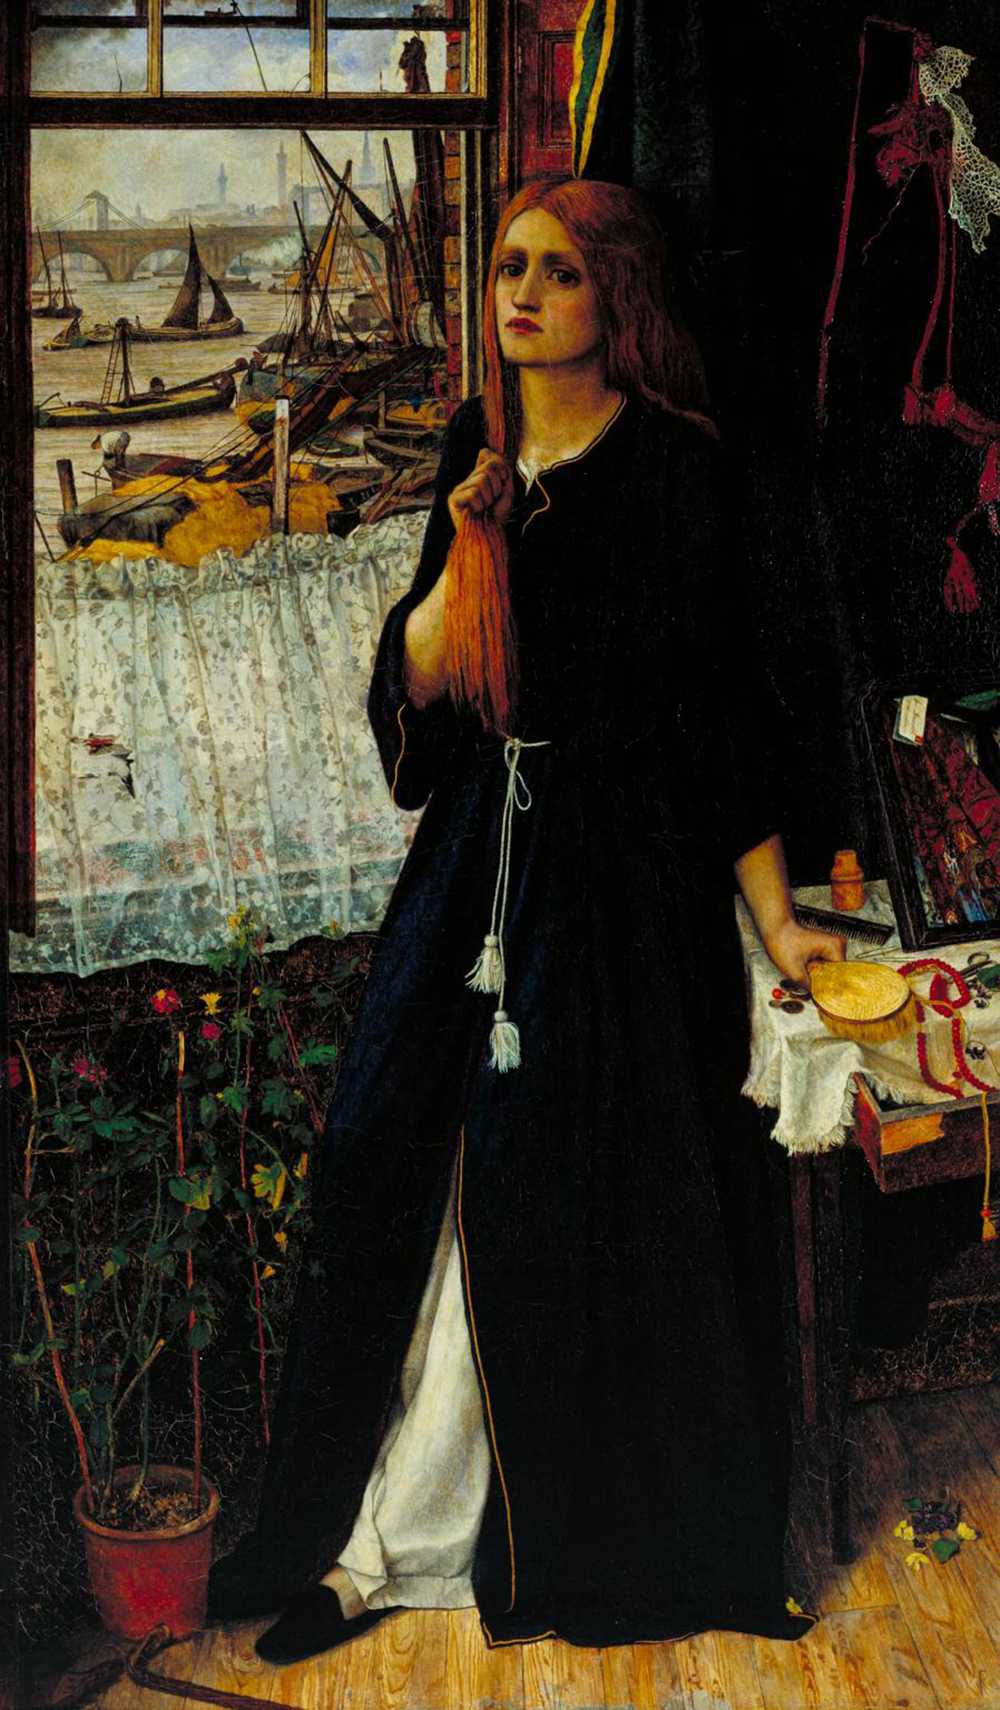 Thoughts of the Past, by John Roddam Spencer Stanhope, c. 1859.